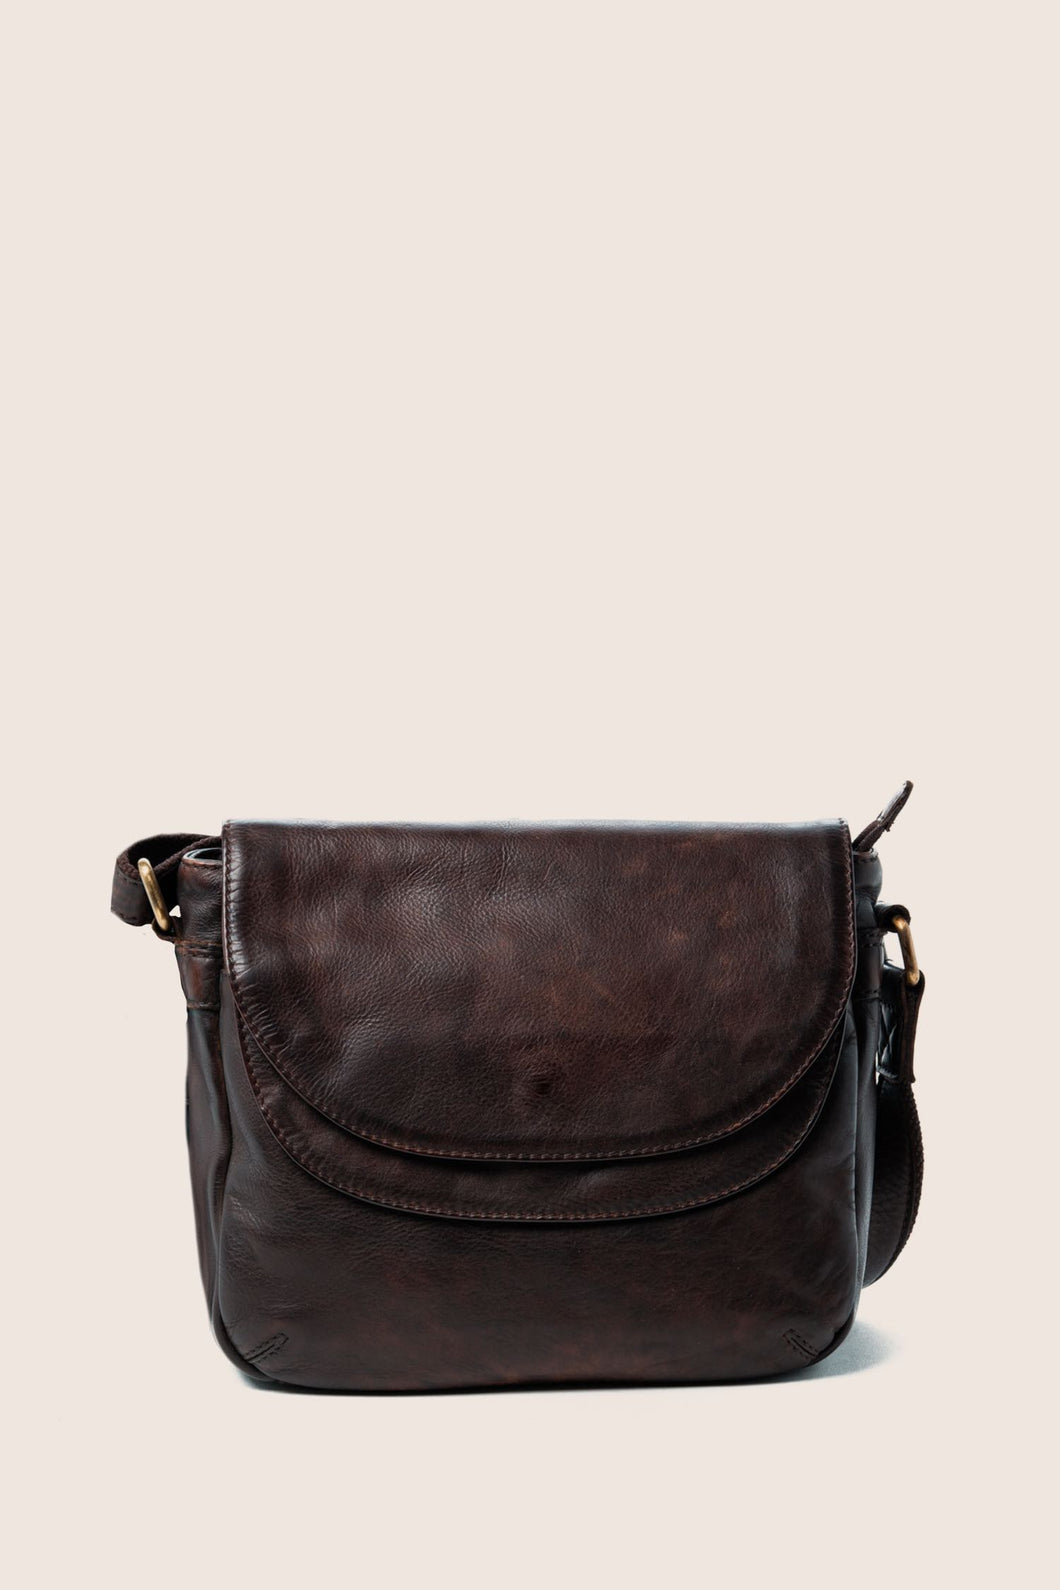 Astrid Double Flap Bag - Brown